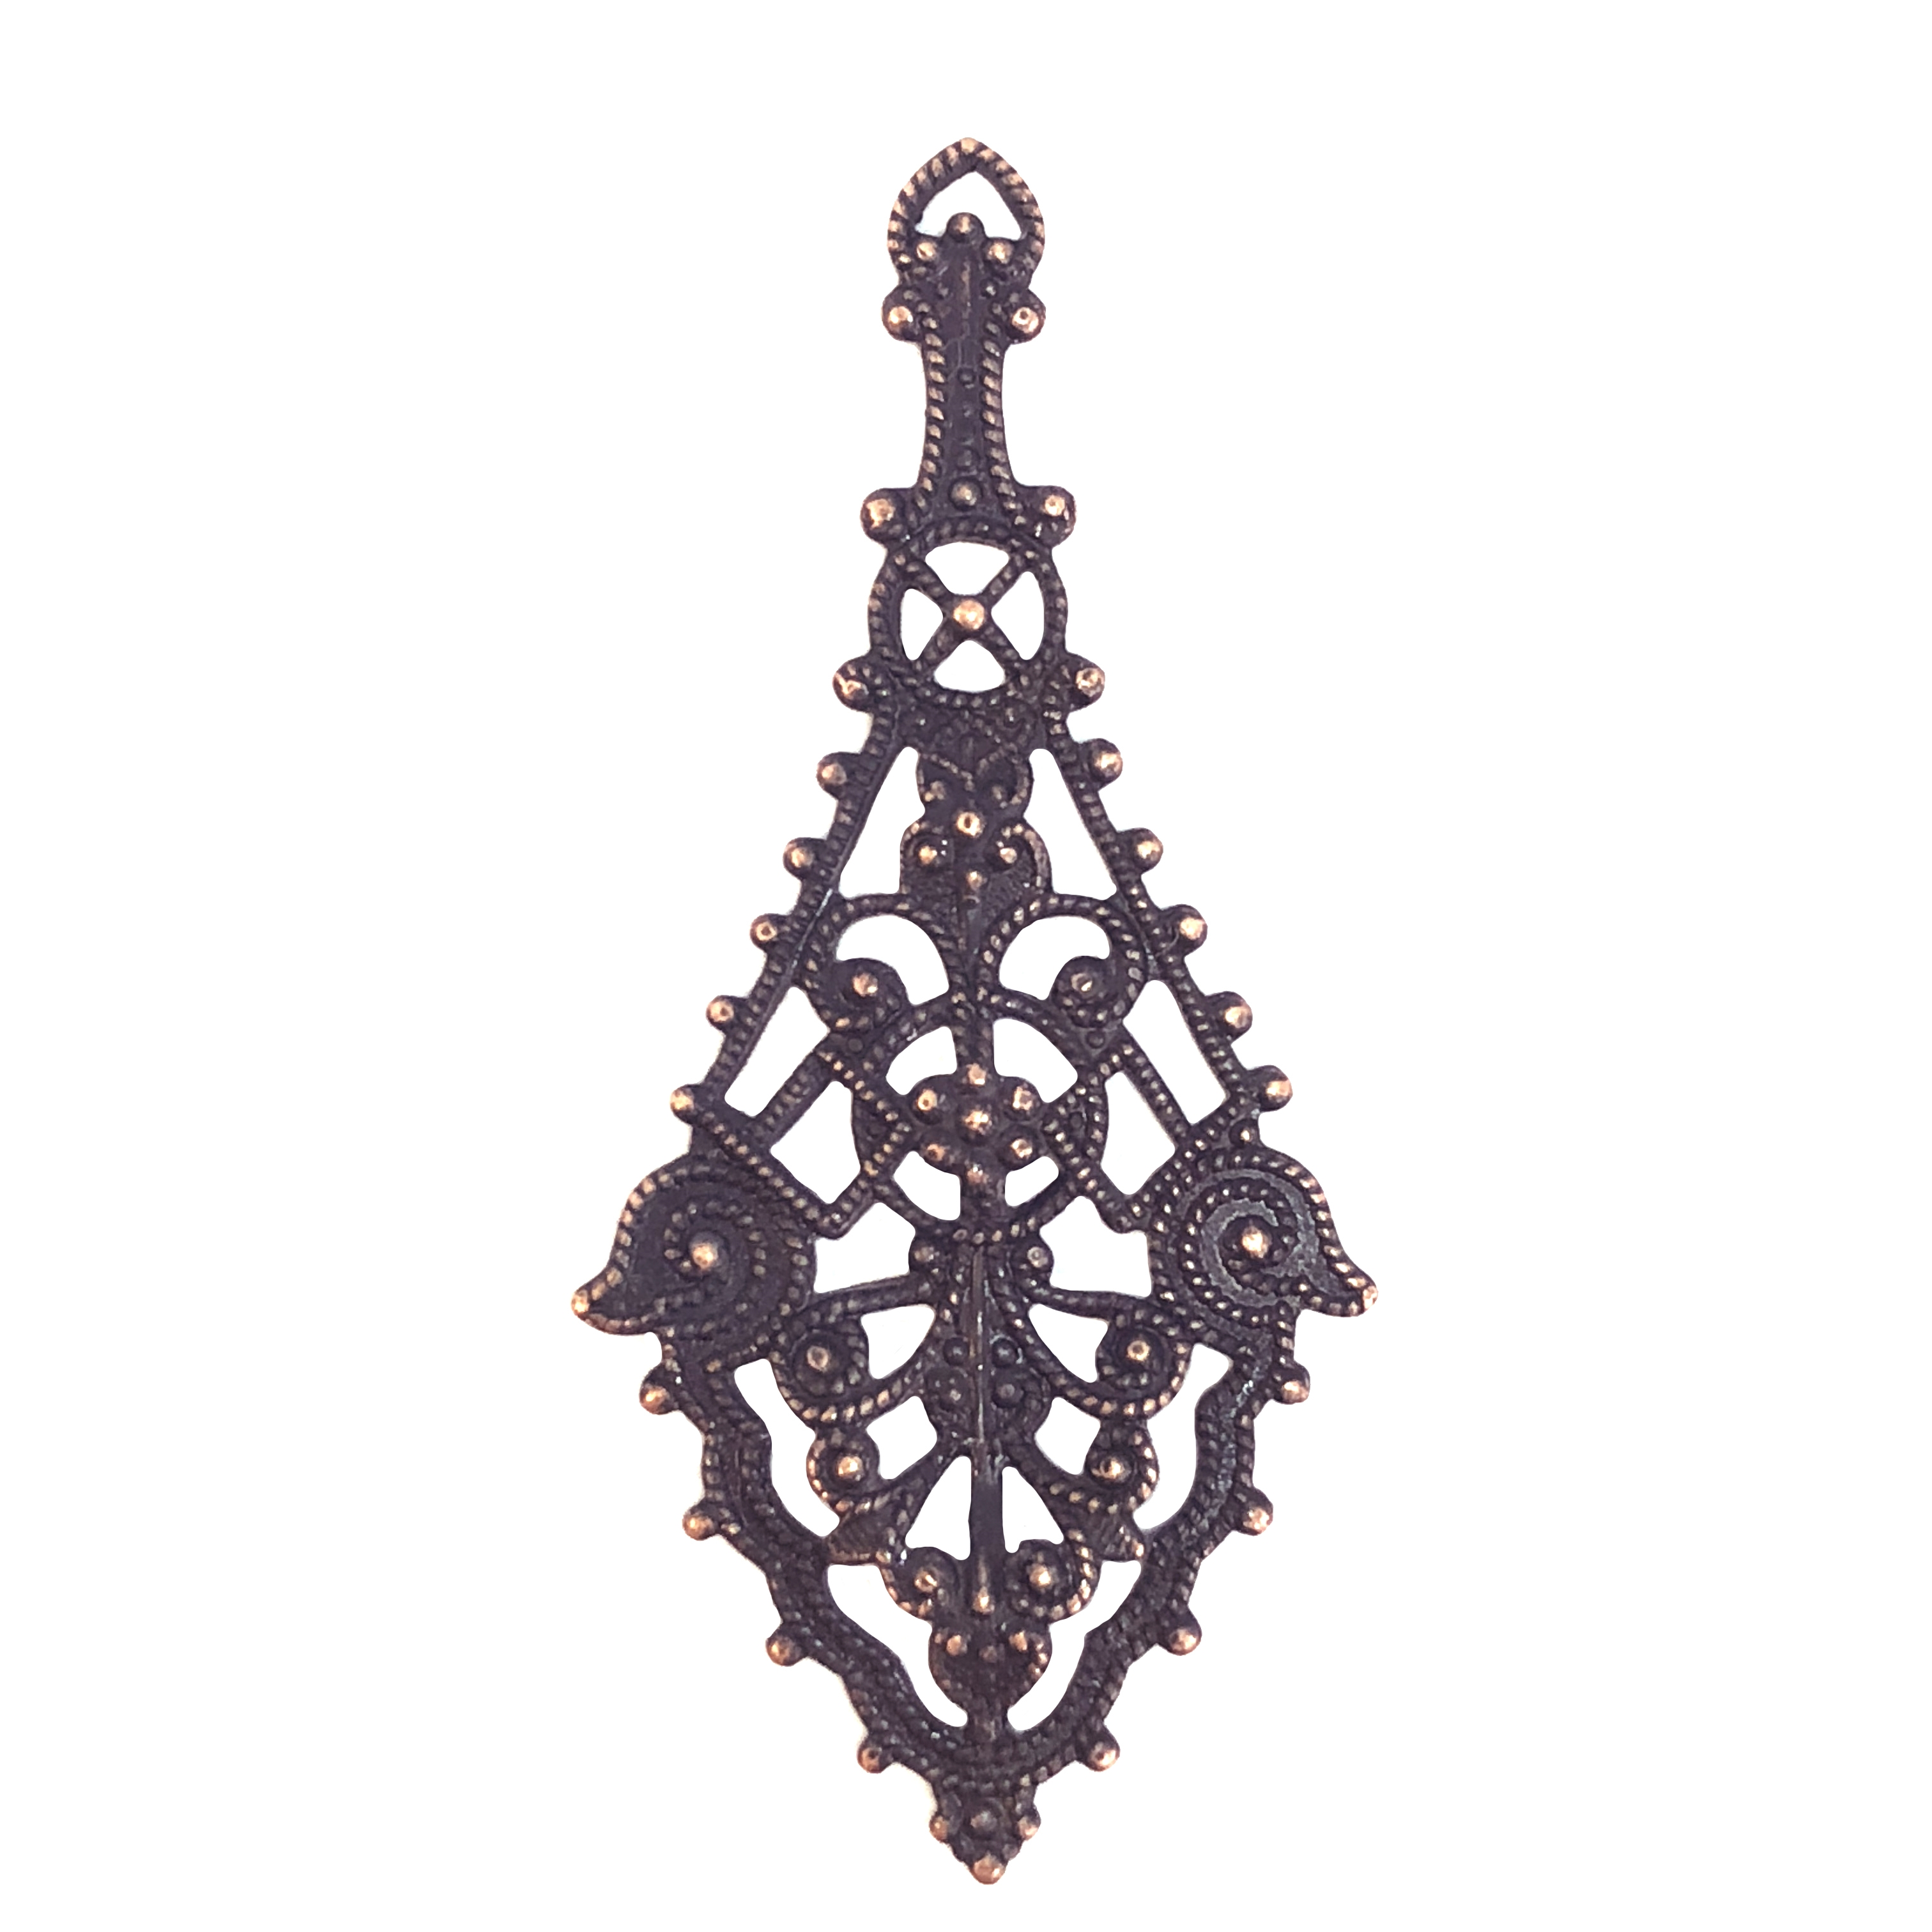 filigree drop, earring, pendant, 08573, rusted iron, copper accents, copper, filigree, earring drop, drop, filigree pendant, jewelry supplies, Bsue boutiques